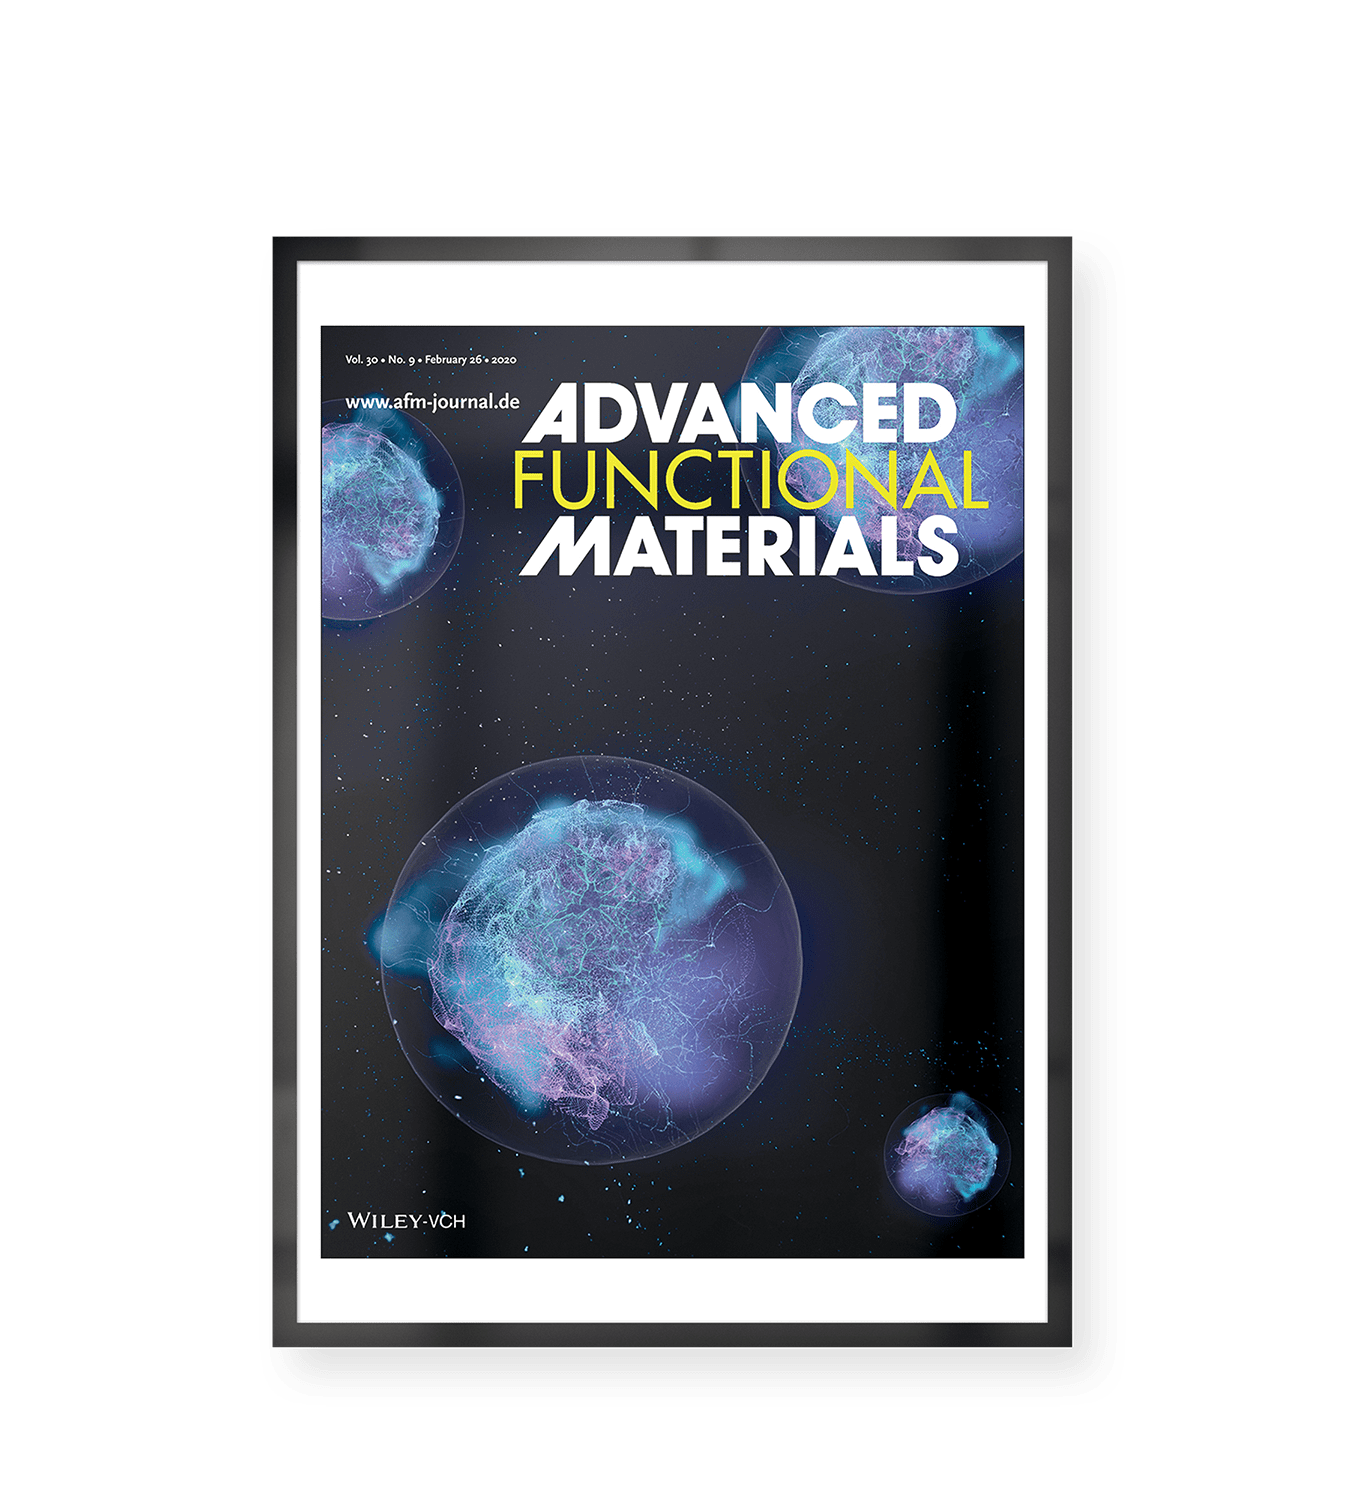 Cover image for Advanced Functional Materials representing the research of Dr. Richard Williams et al: